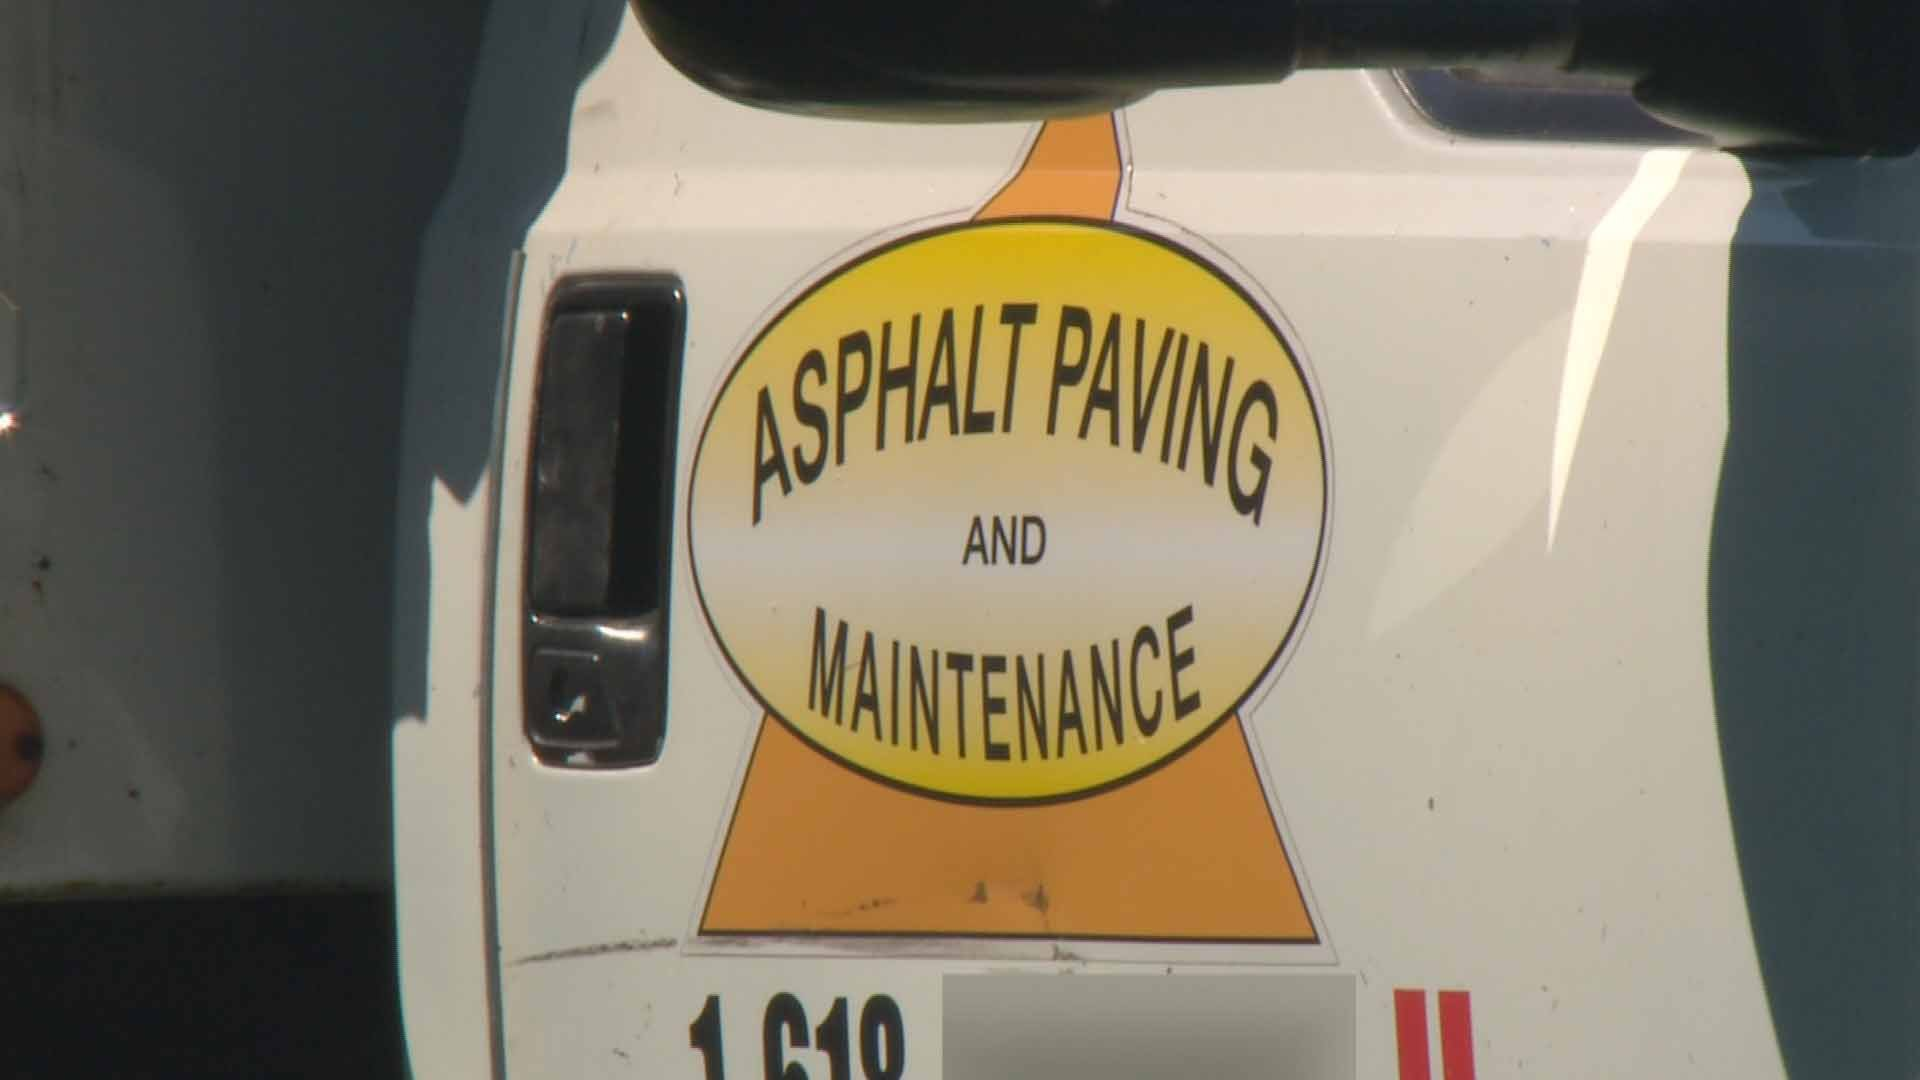 Customers of Asphalt Paving & Maintenance are demanding a refund after they said the contractor did a poor job forcing them to have even more work done. Credit: KMOV